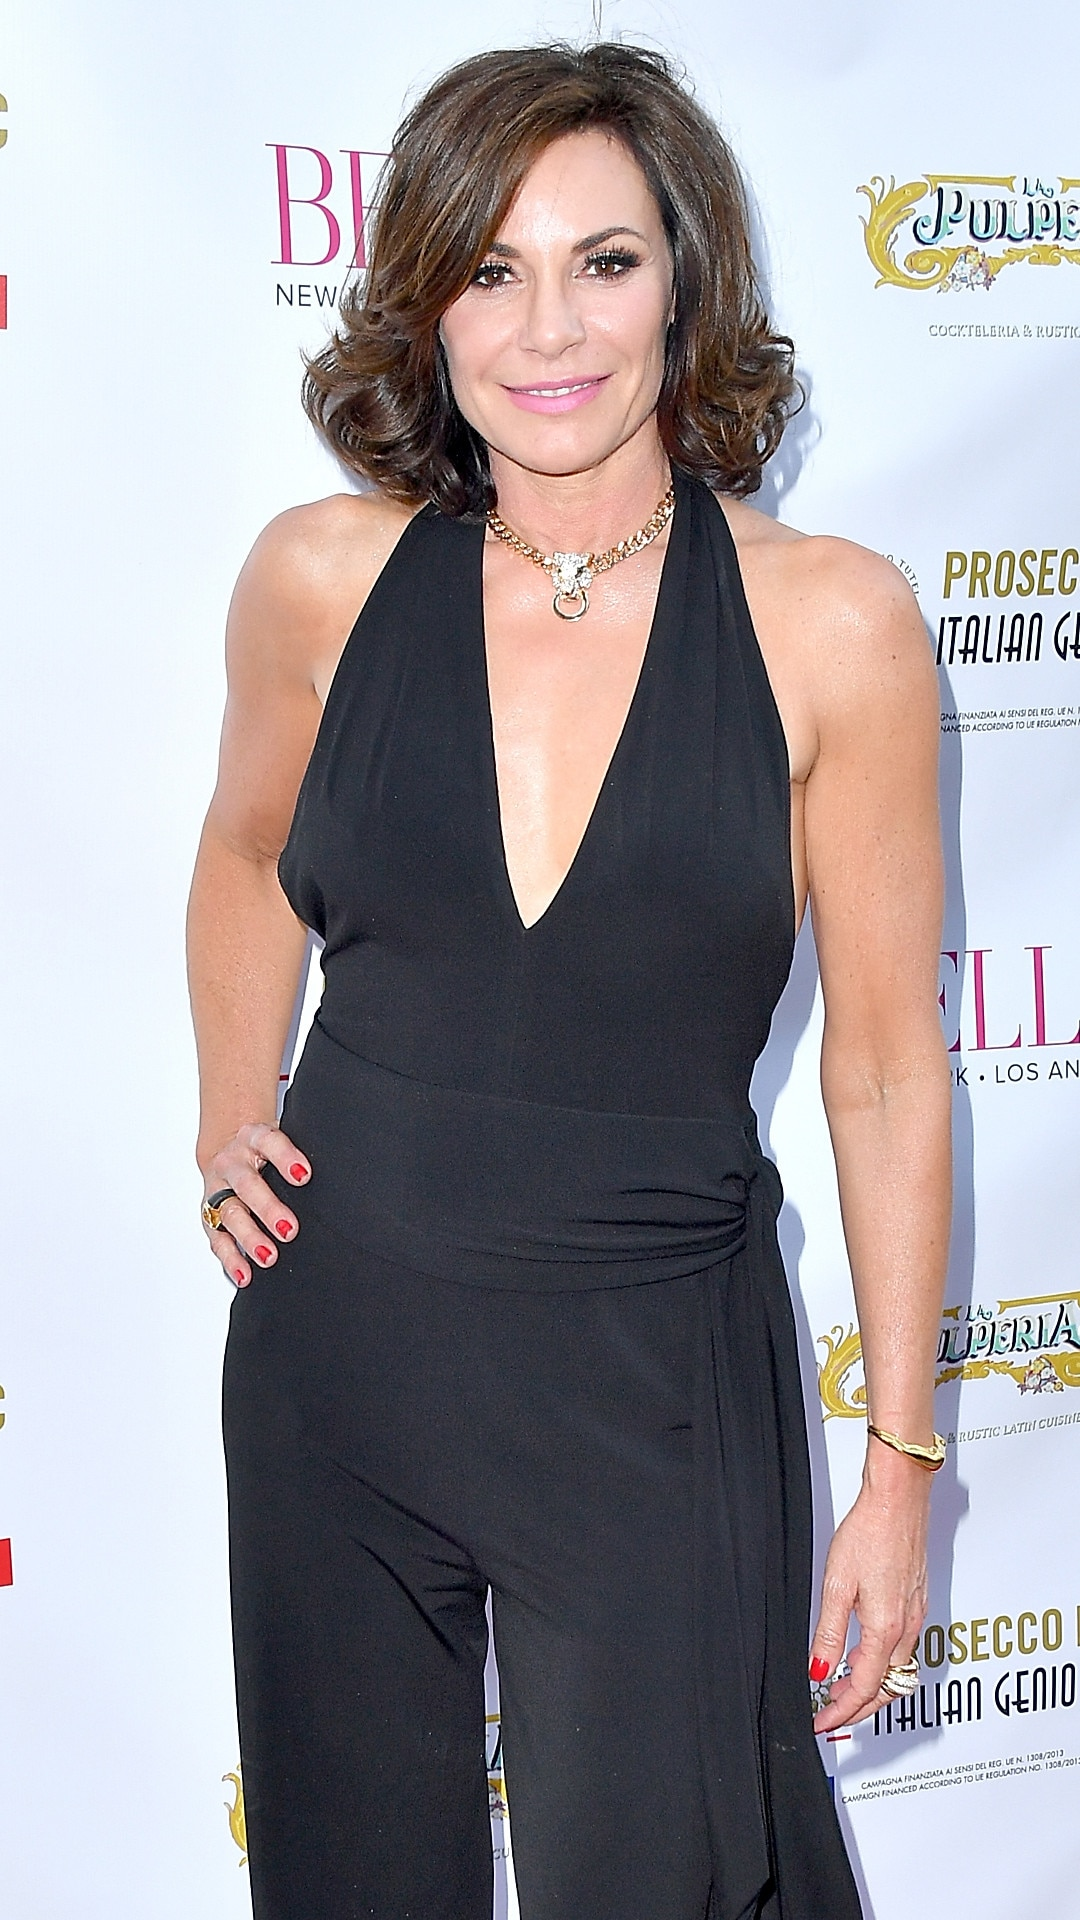 Images Luann de Lesseps nudes (66 foto and video), Tits, Fappening, Feet, butt 2019